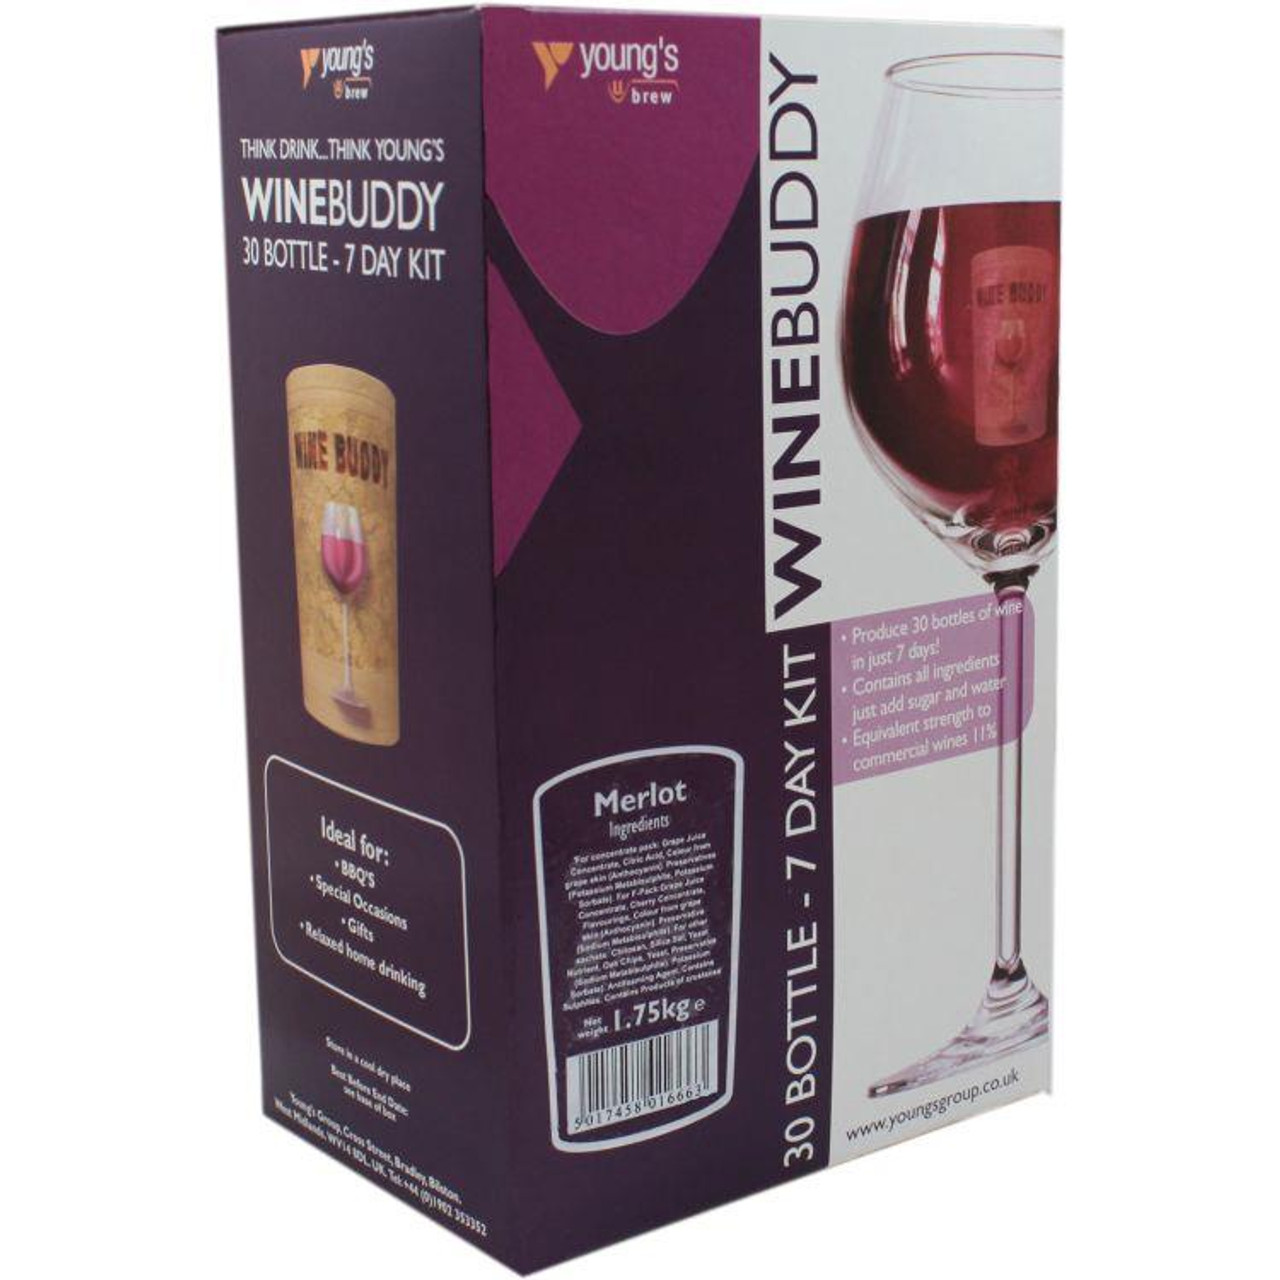 Youngs WineBuddy Merlot 30 Bottle Kit